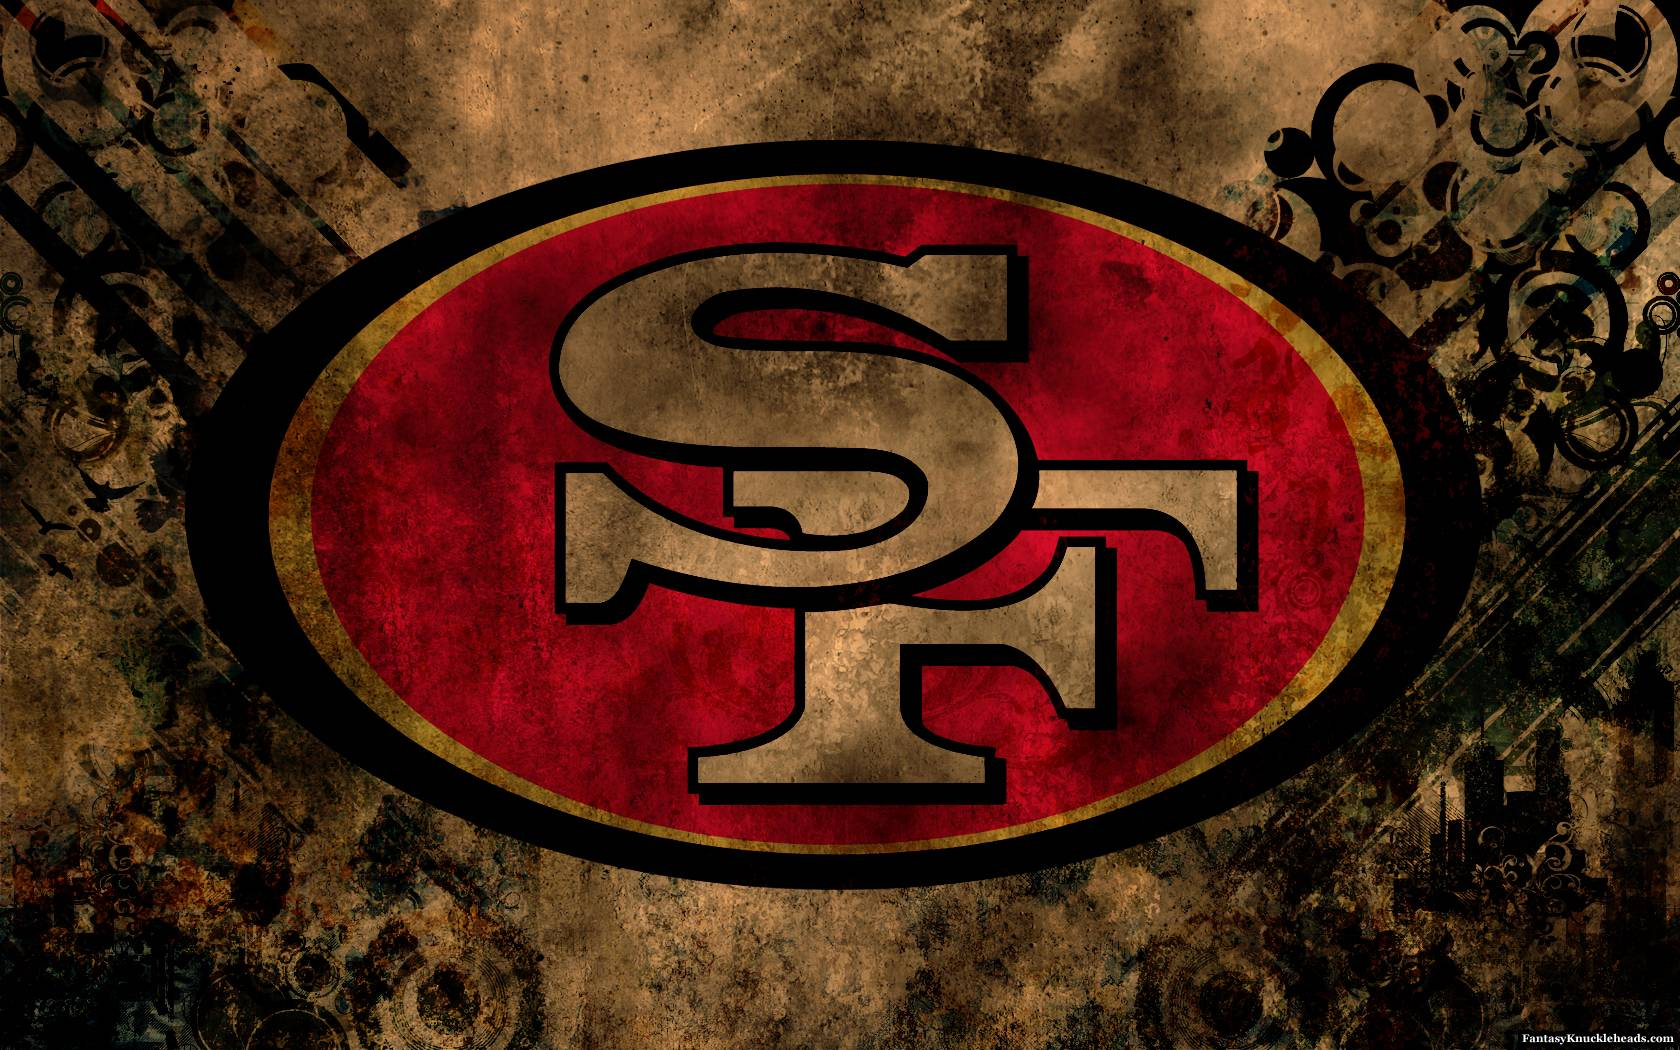 San Francisco 49ers Logo HD Wallpaper in Desktop | Wallpaper HD